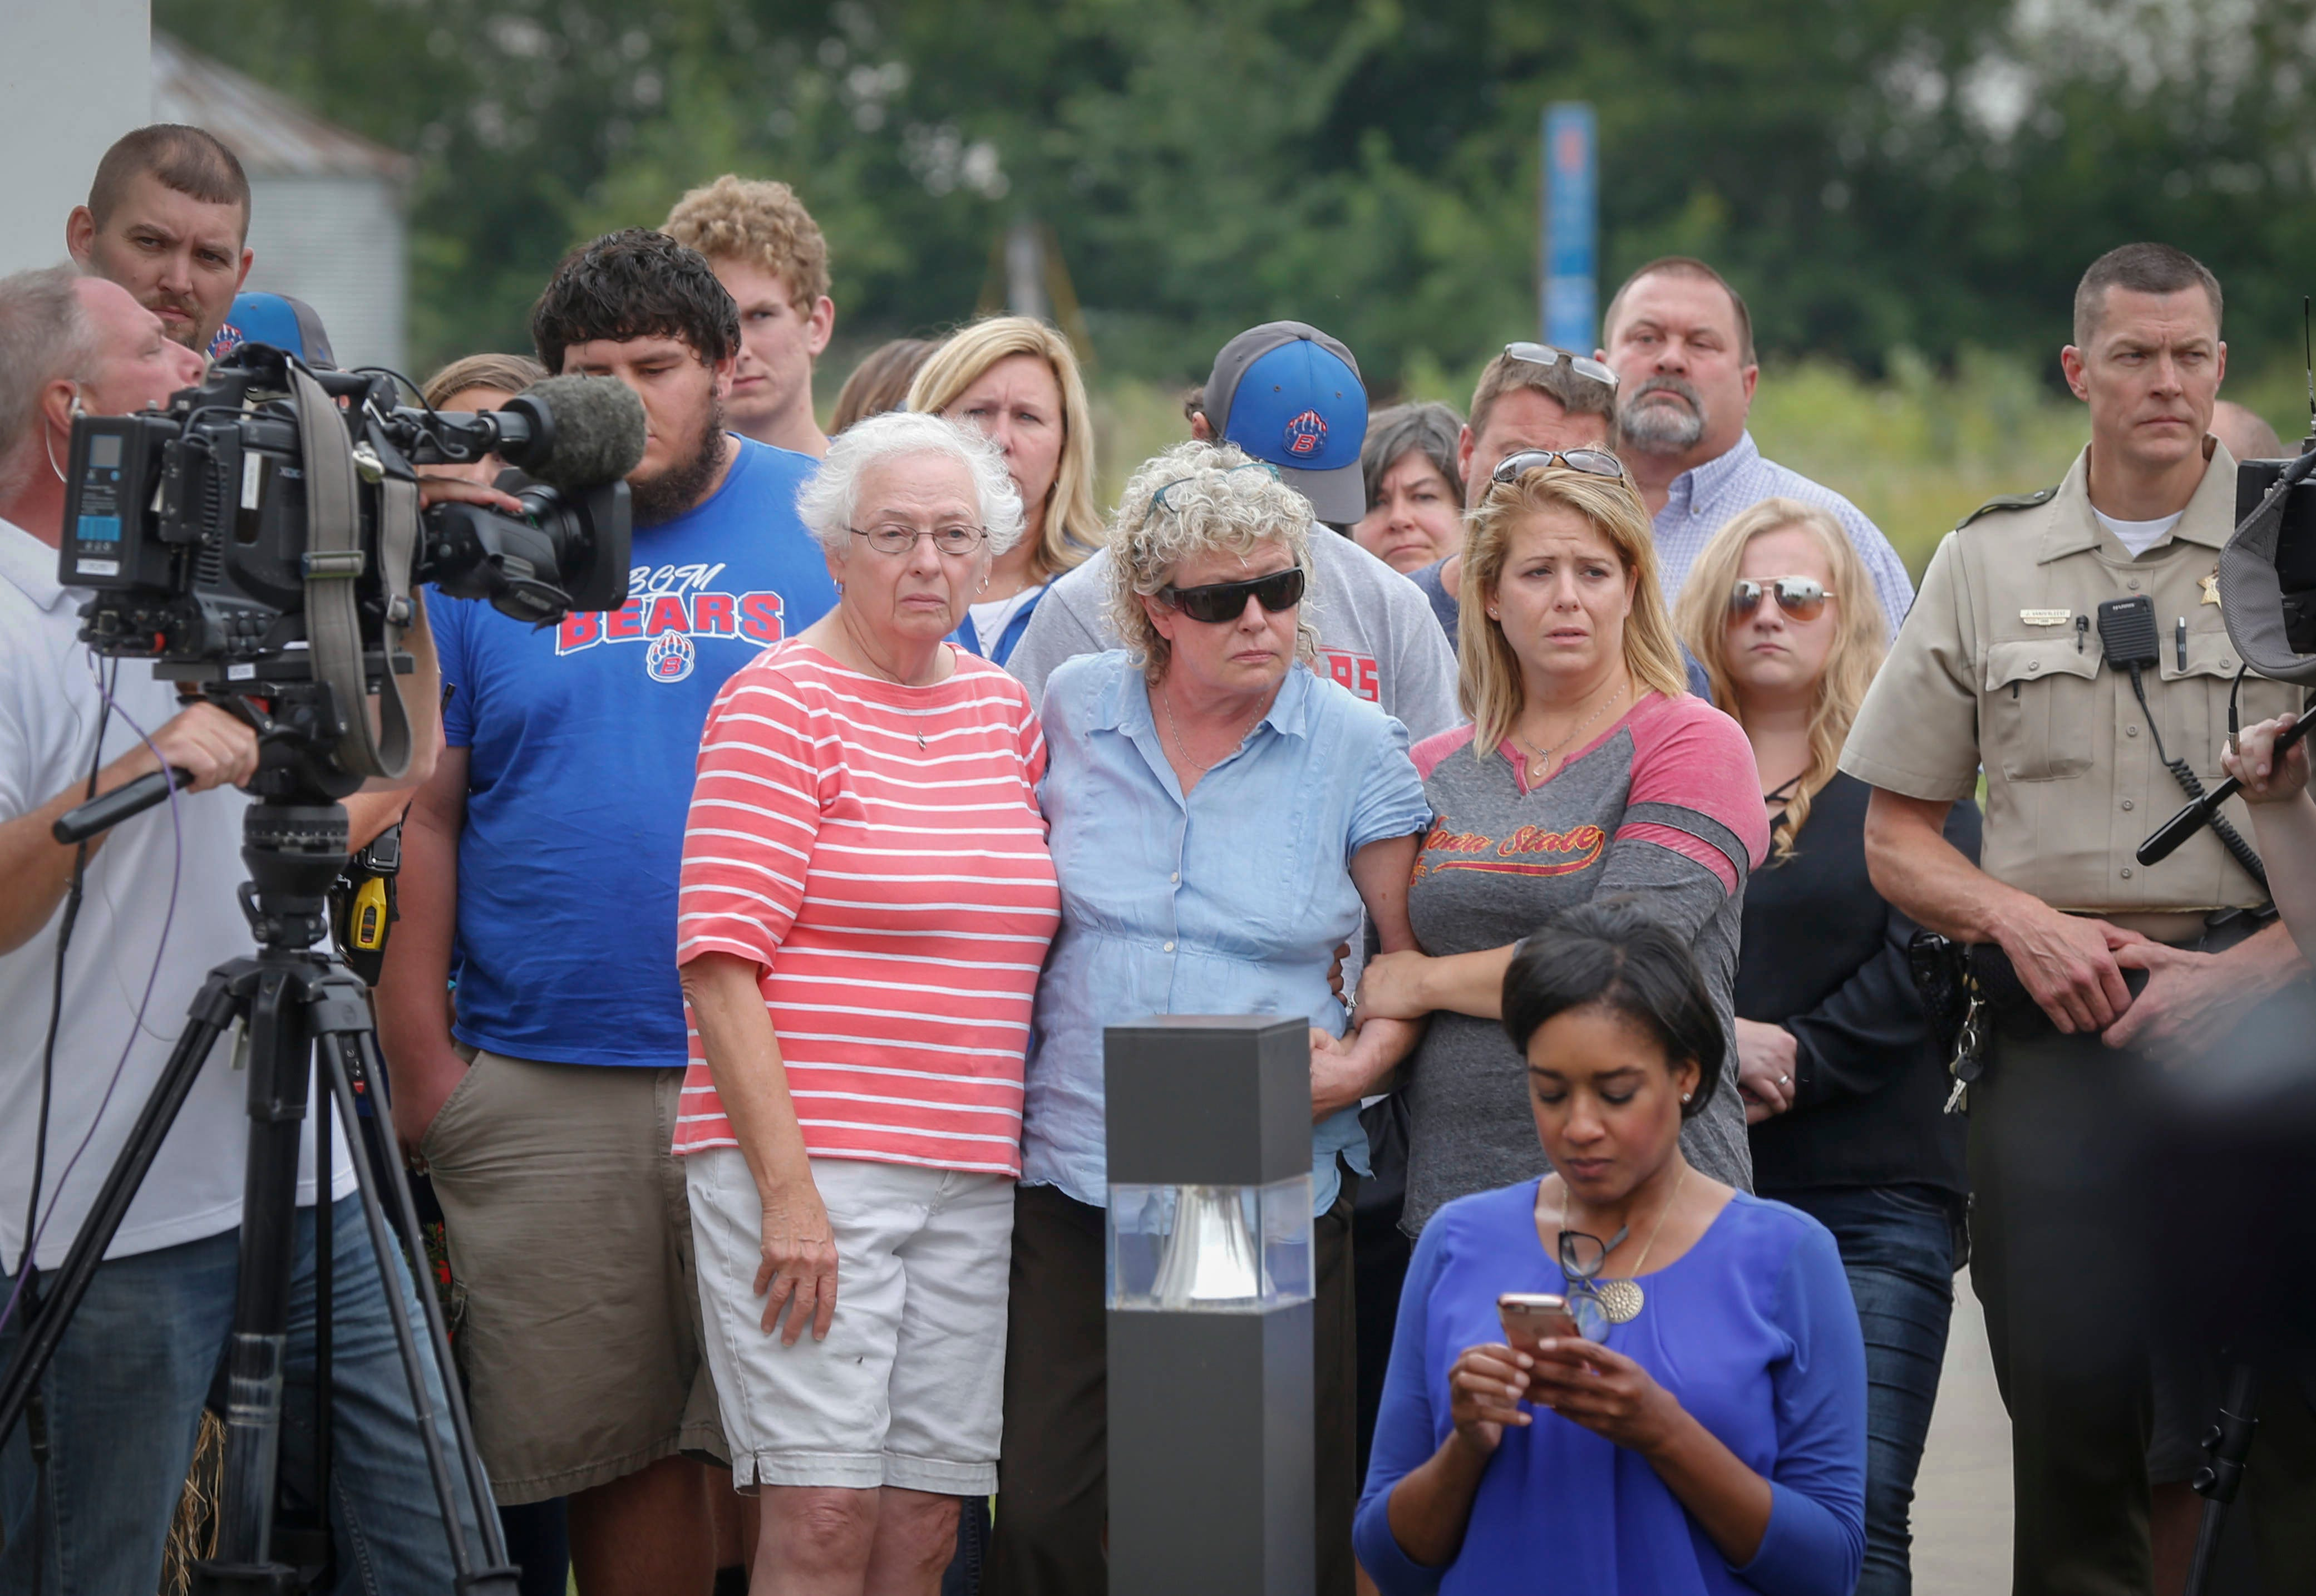 Mollie Tibbetts' family and friends listen to officials at a press conference in Montezuma on Aug. 21, 2018, when law enforcement authorities report they have found Mollie's body.